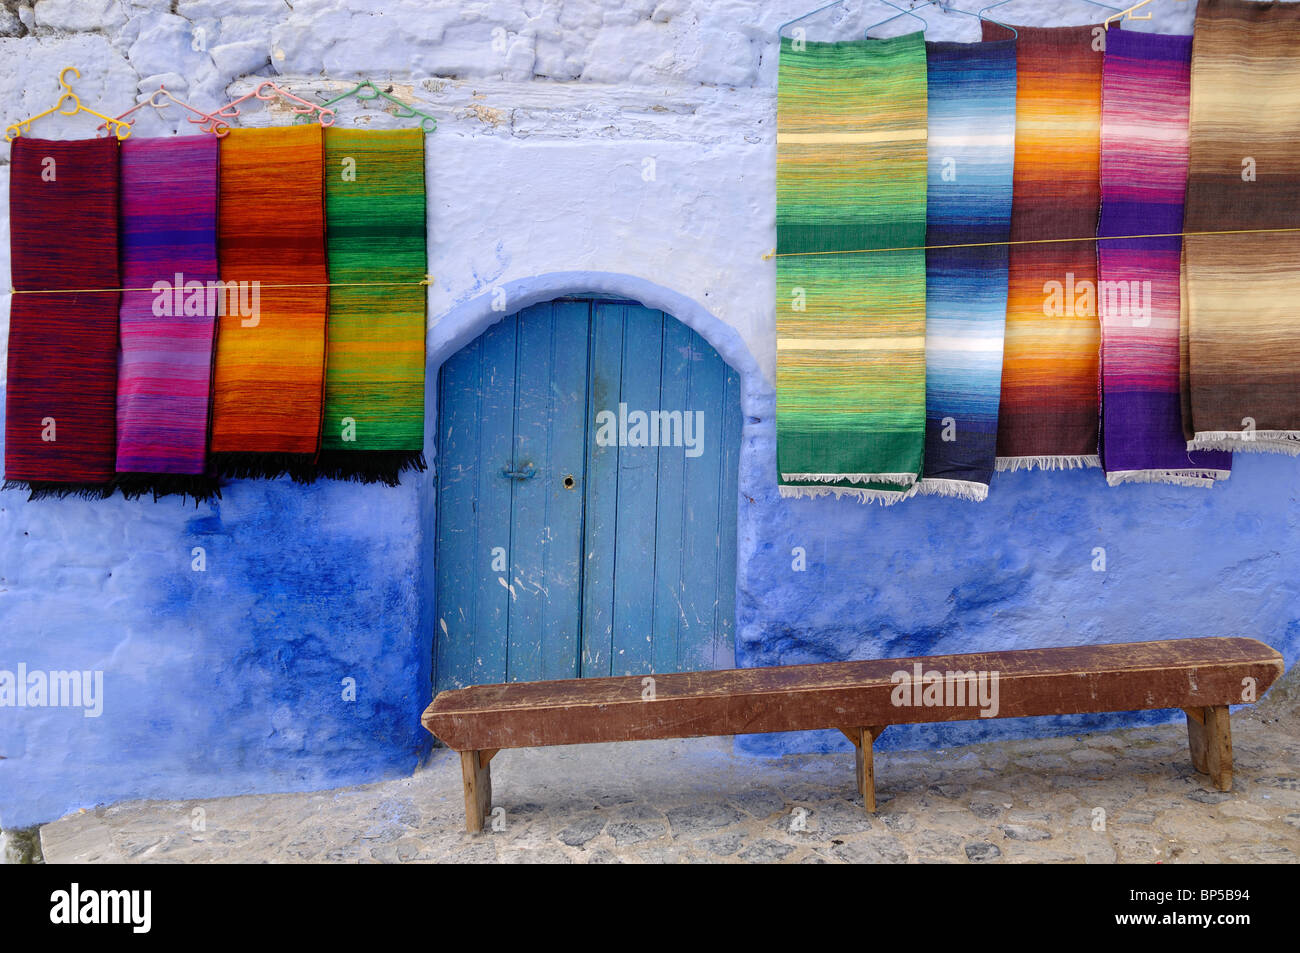 Display of Colourful Woven Carpets, Hanging Carpets or Rugs for Sale, Blue Door and Wooden Bench, Chefchaouen, Morocco - Stock Image